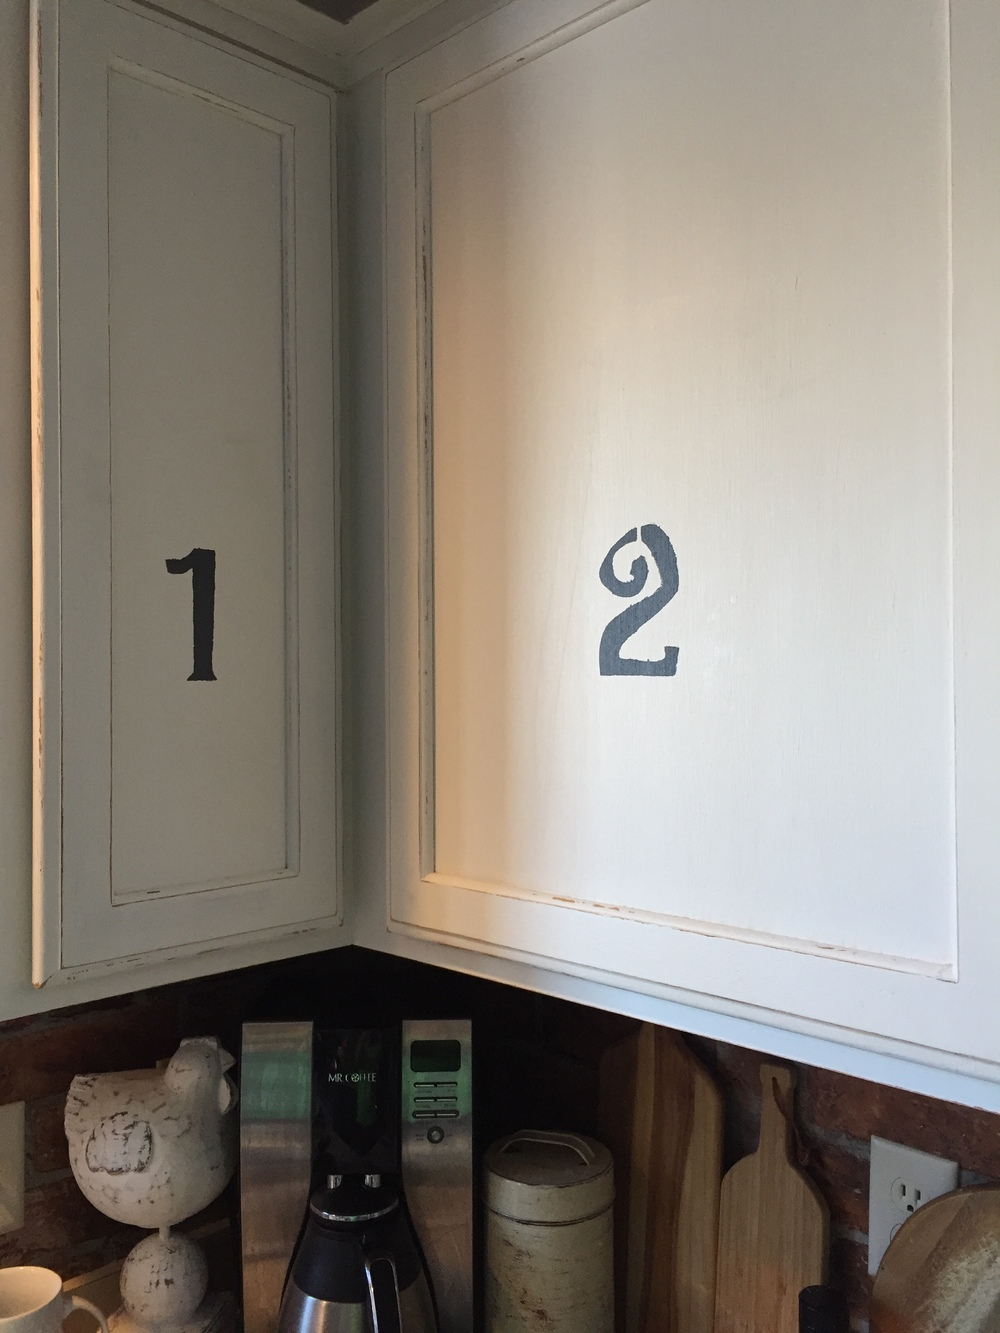 Stenciled numbers applied to cabinet door fronts